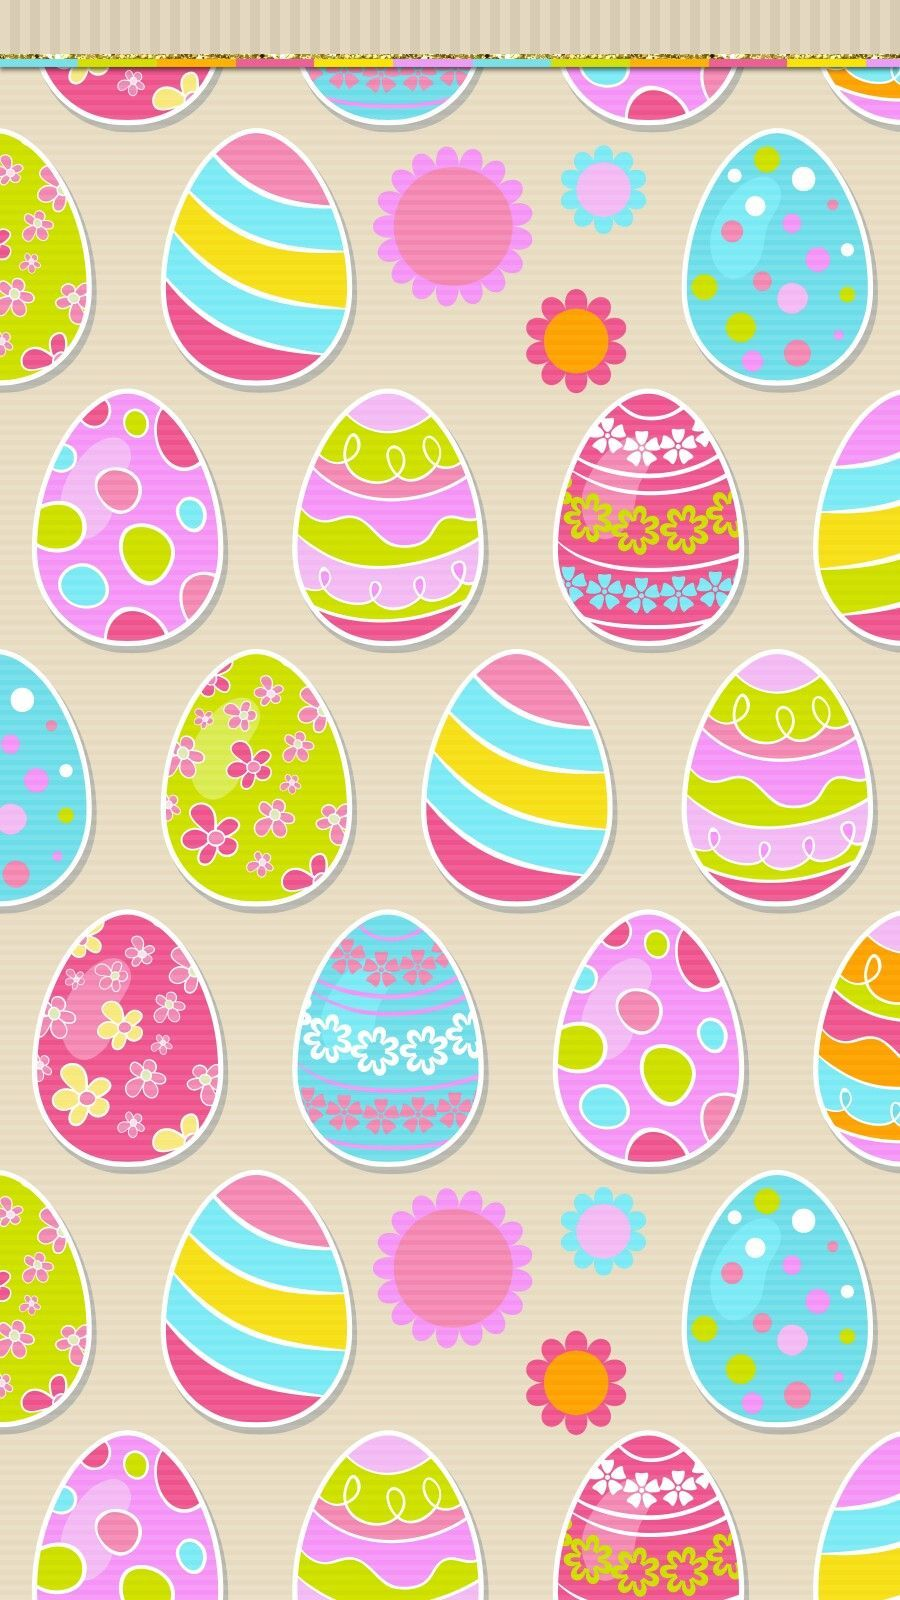 Easter Iphone Wallpapers Wallpaper Cave